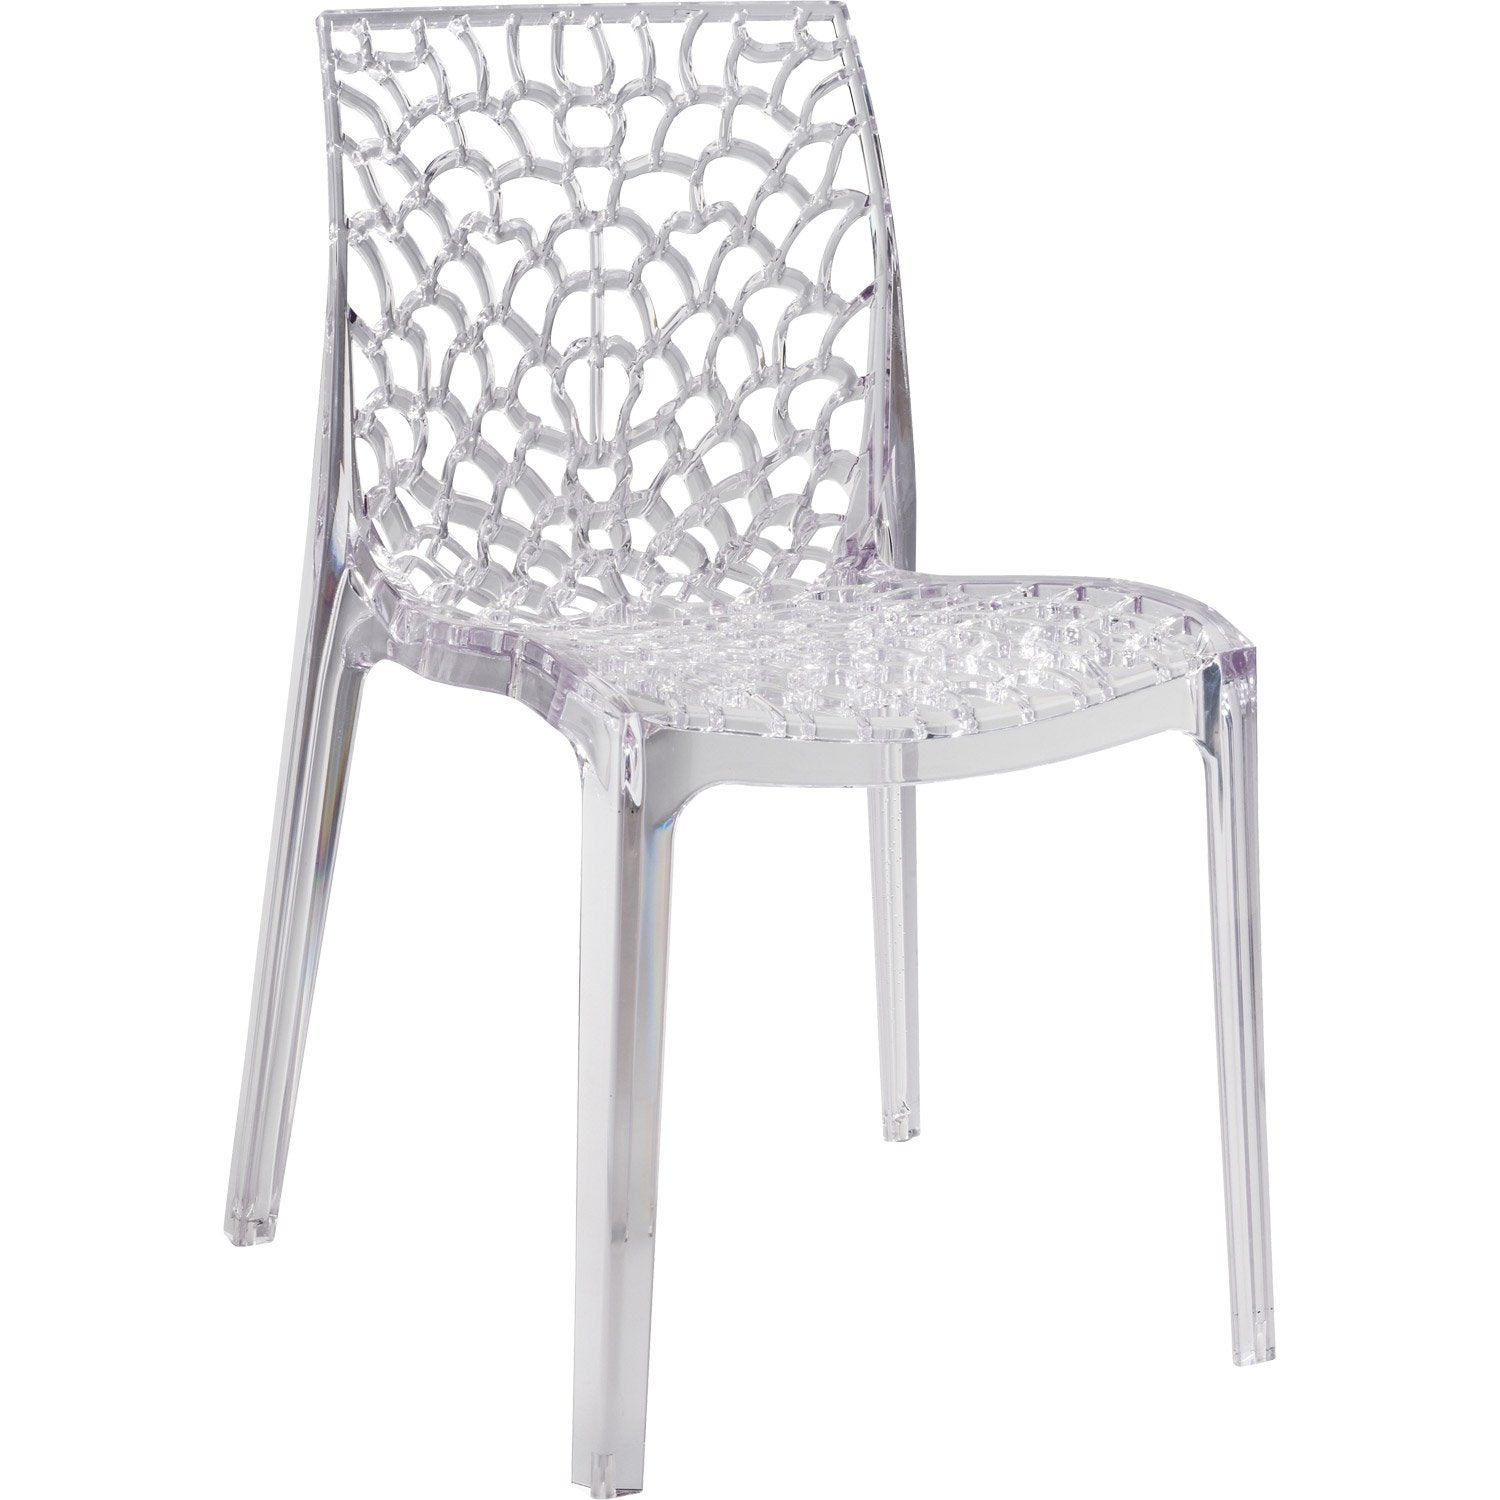 Chaise de jardin en polycarbonate Grafik lux transparent ...